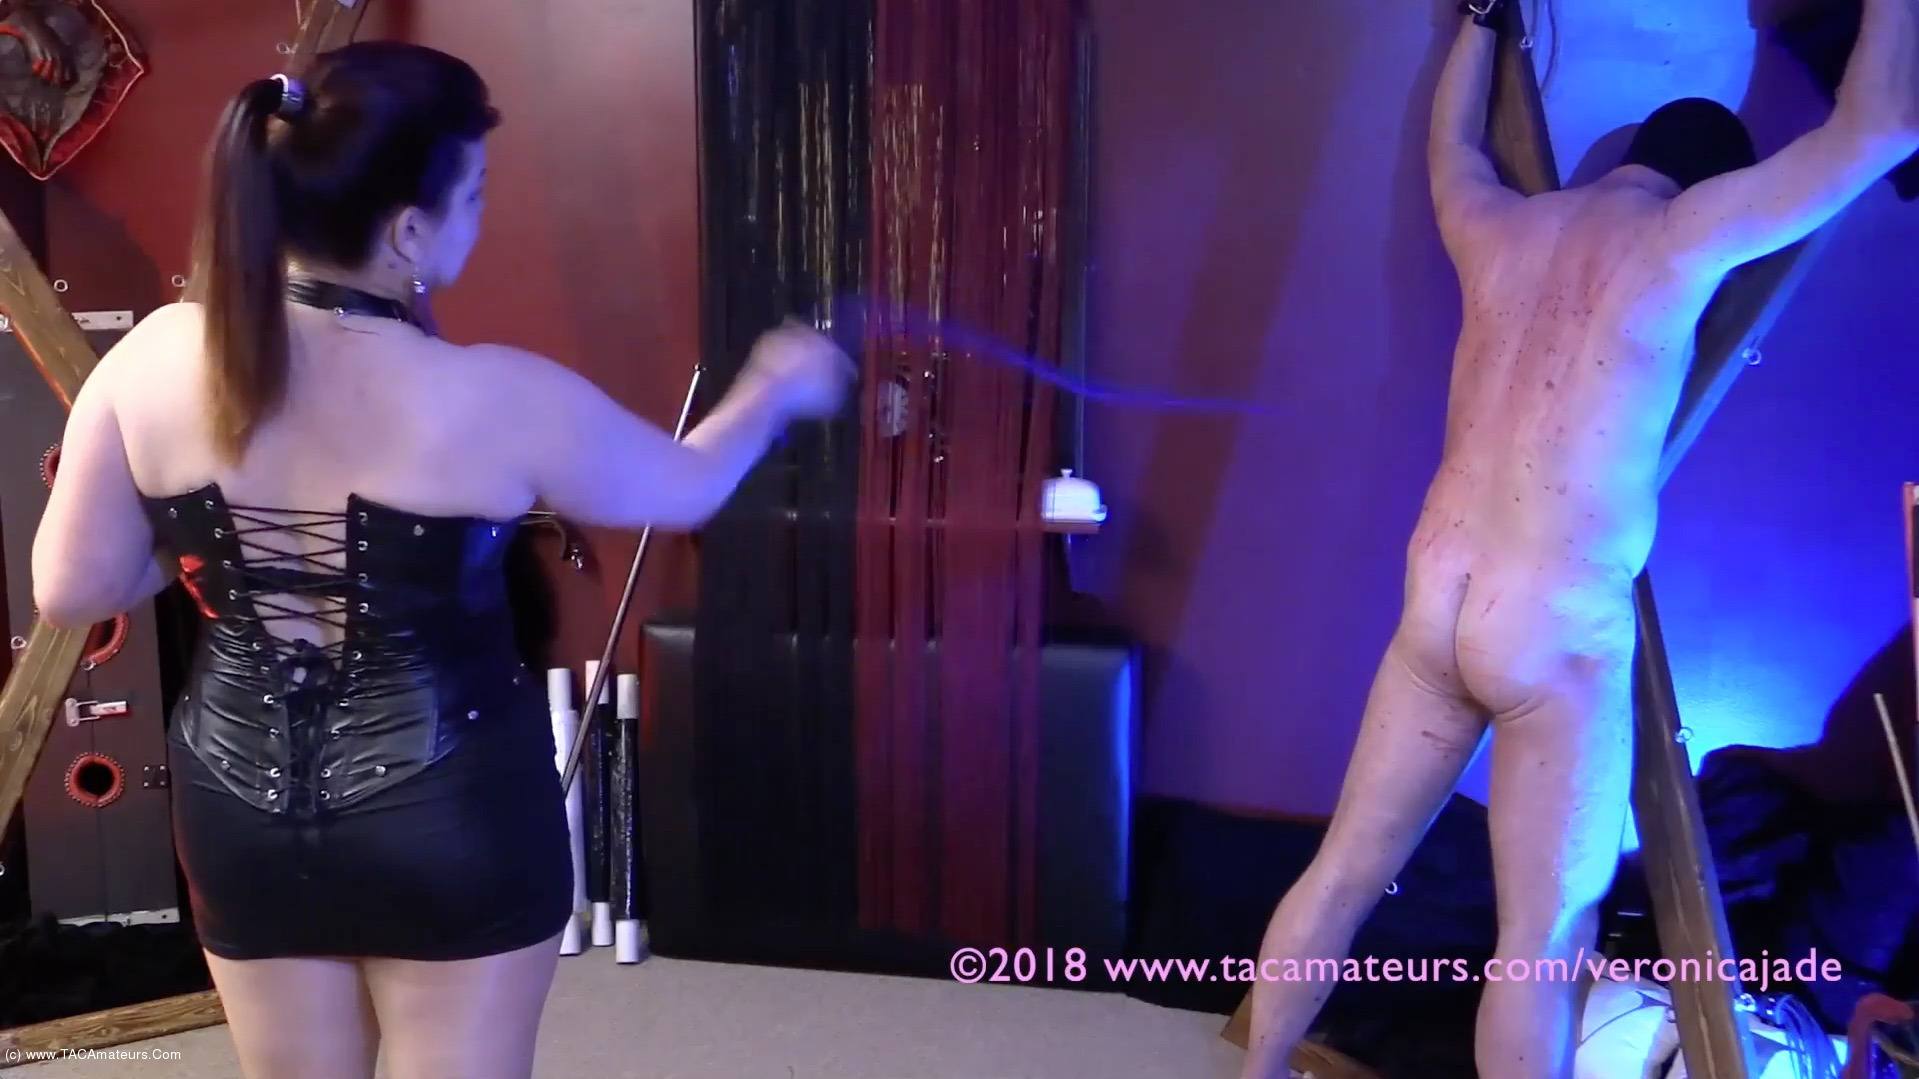 VeronicaJade - Whipping Time Pt2 scene 1